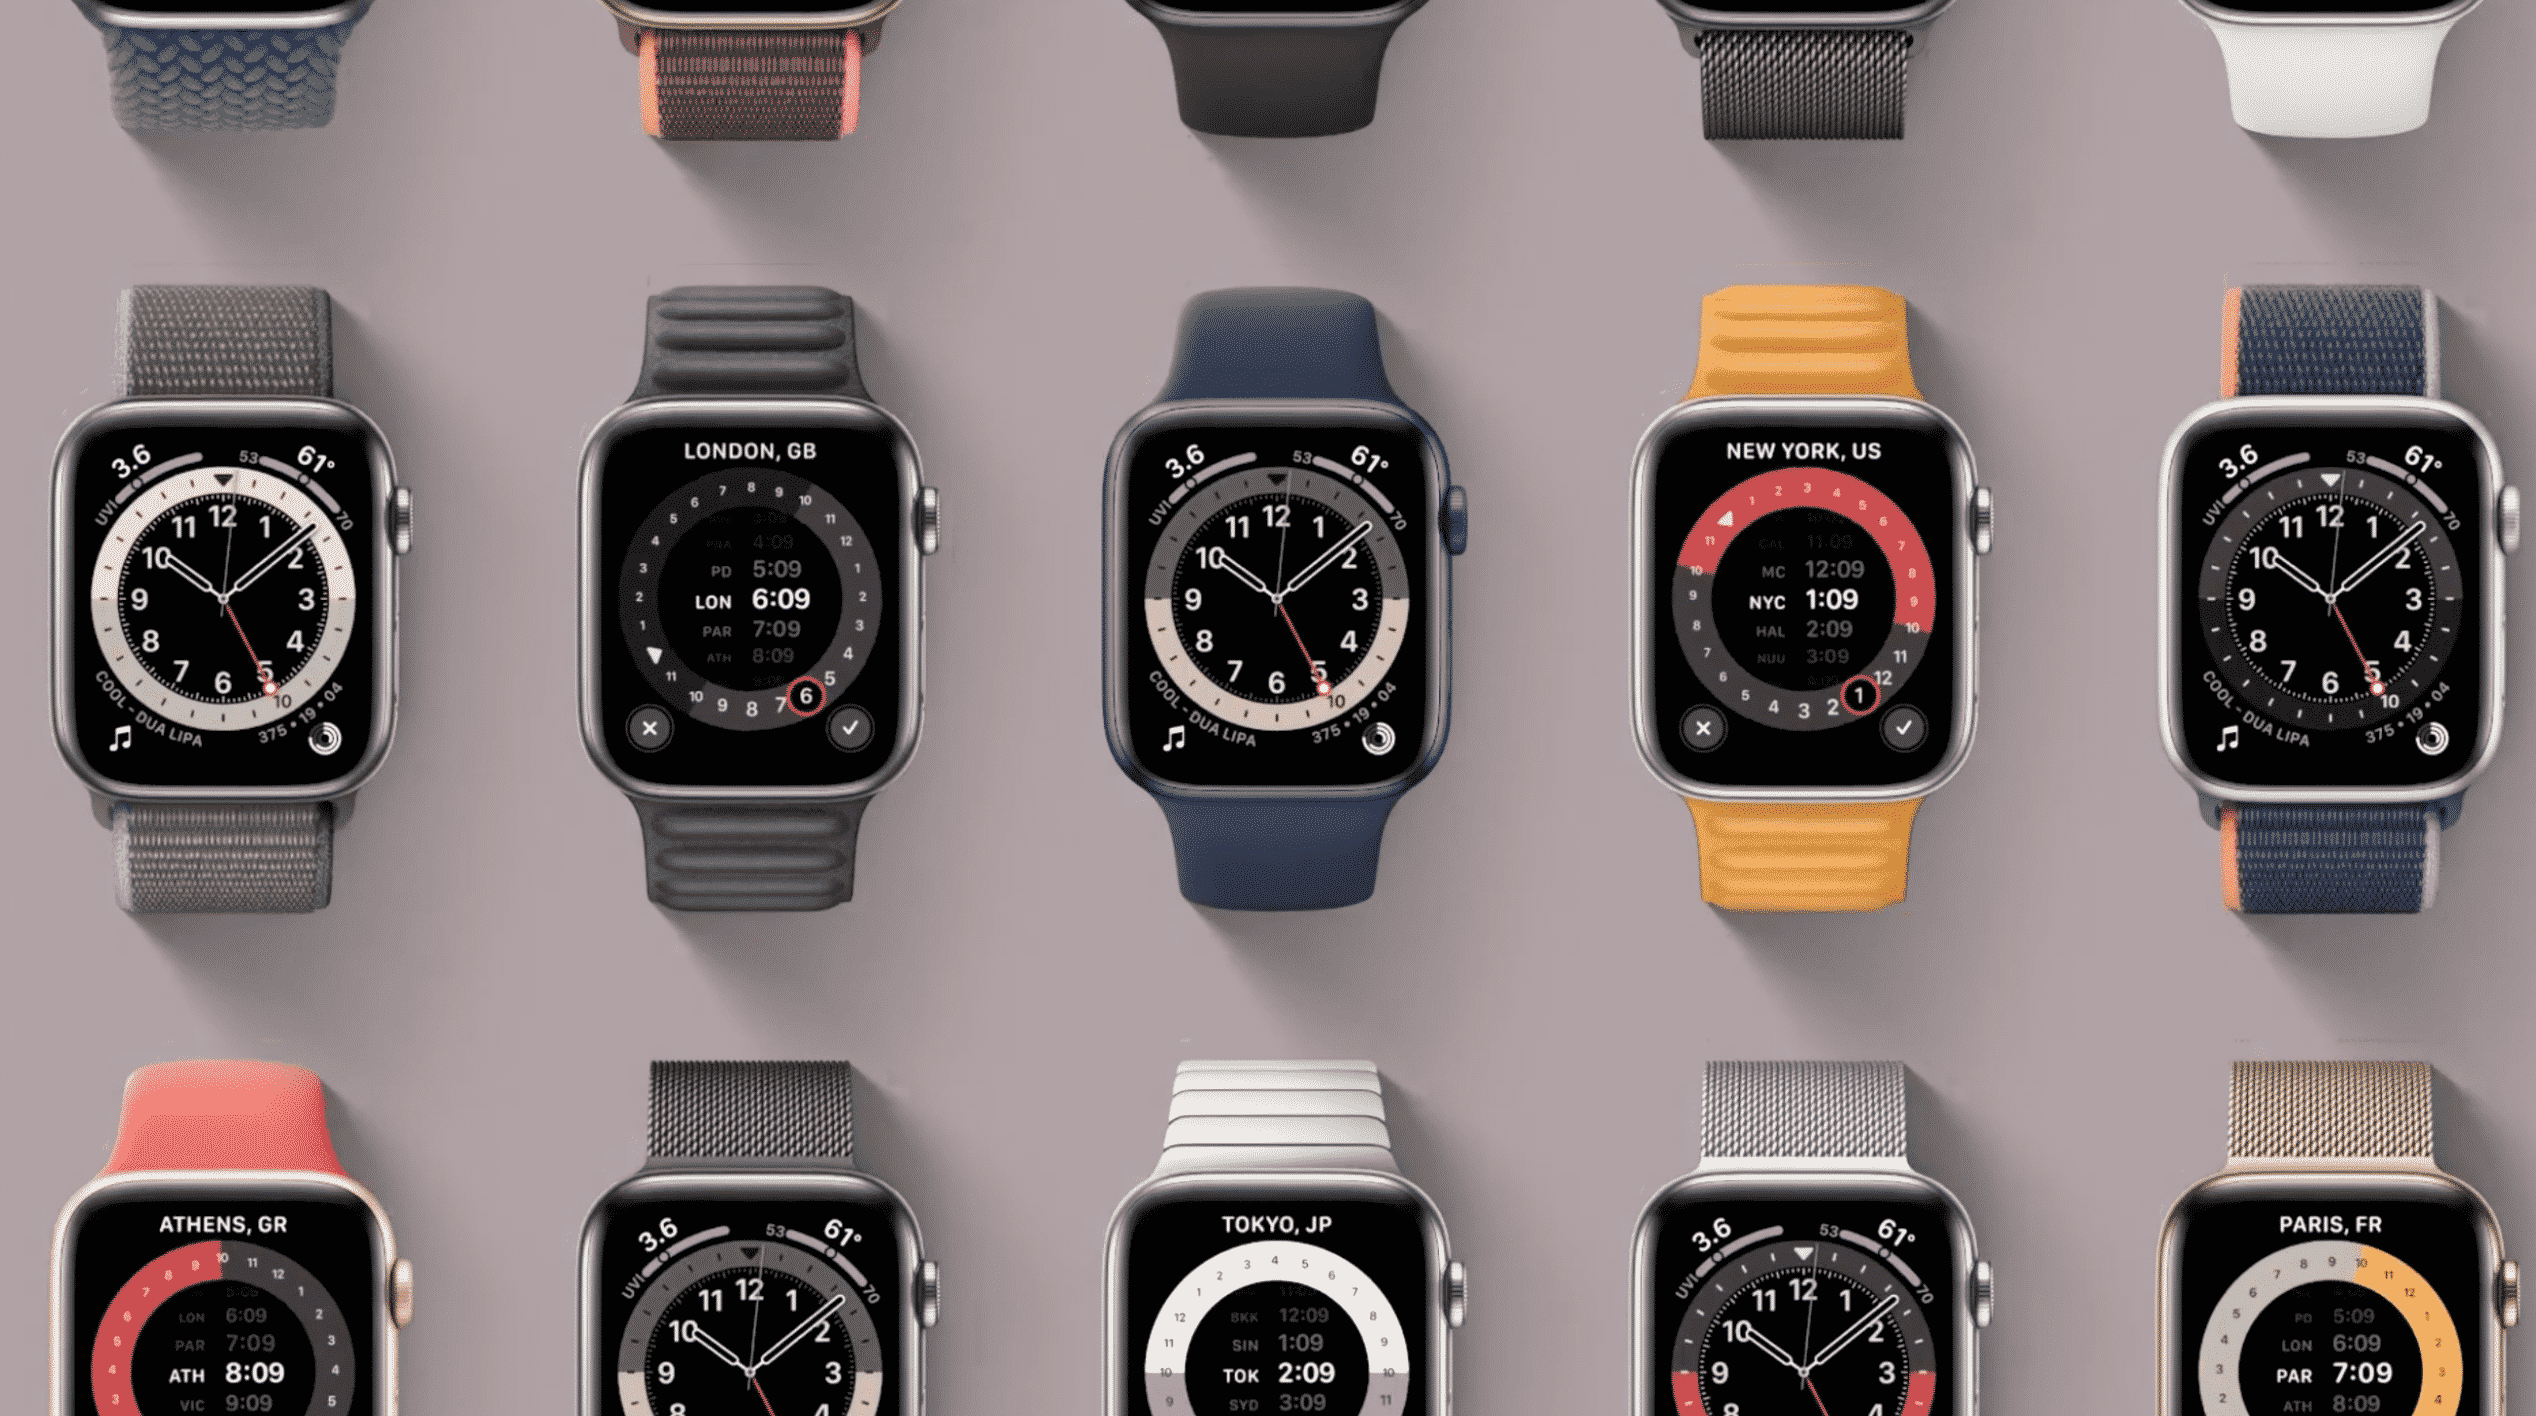 7 Apple Watch Faces